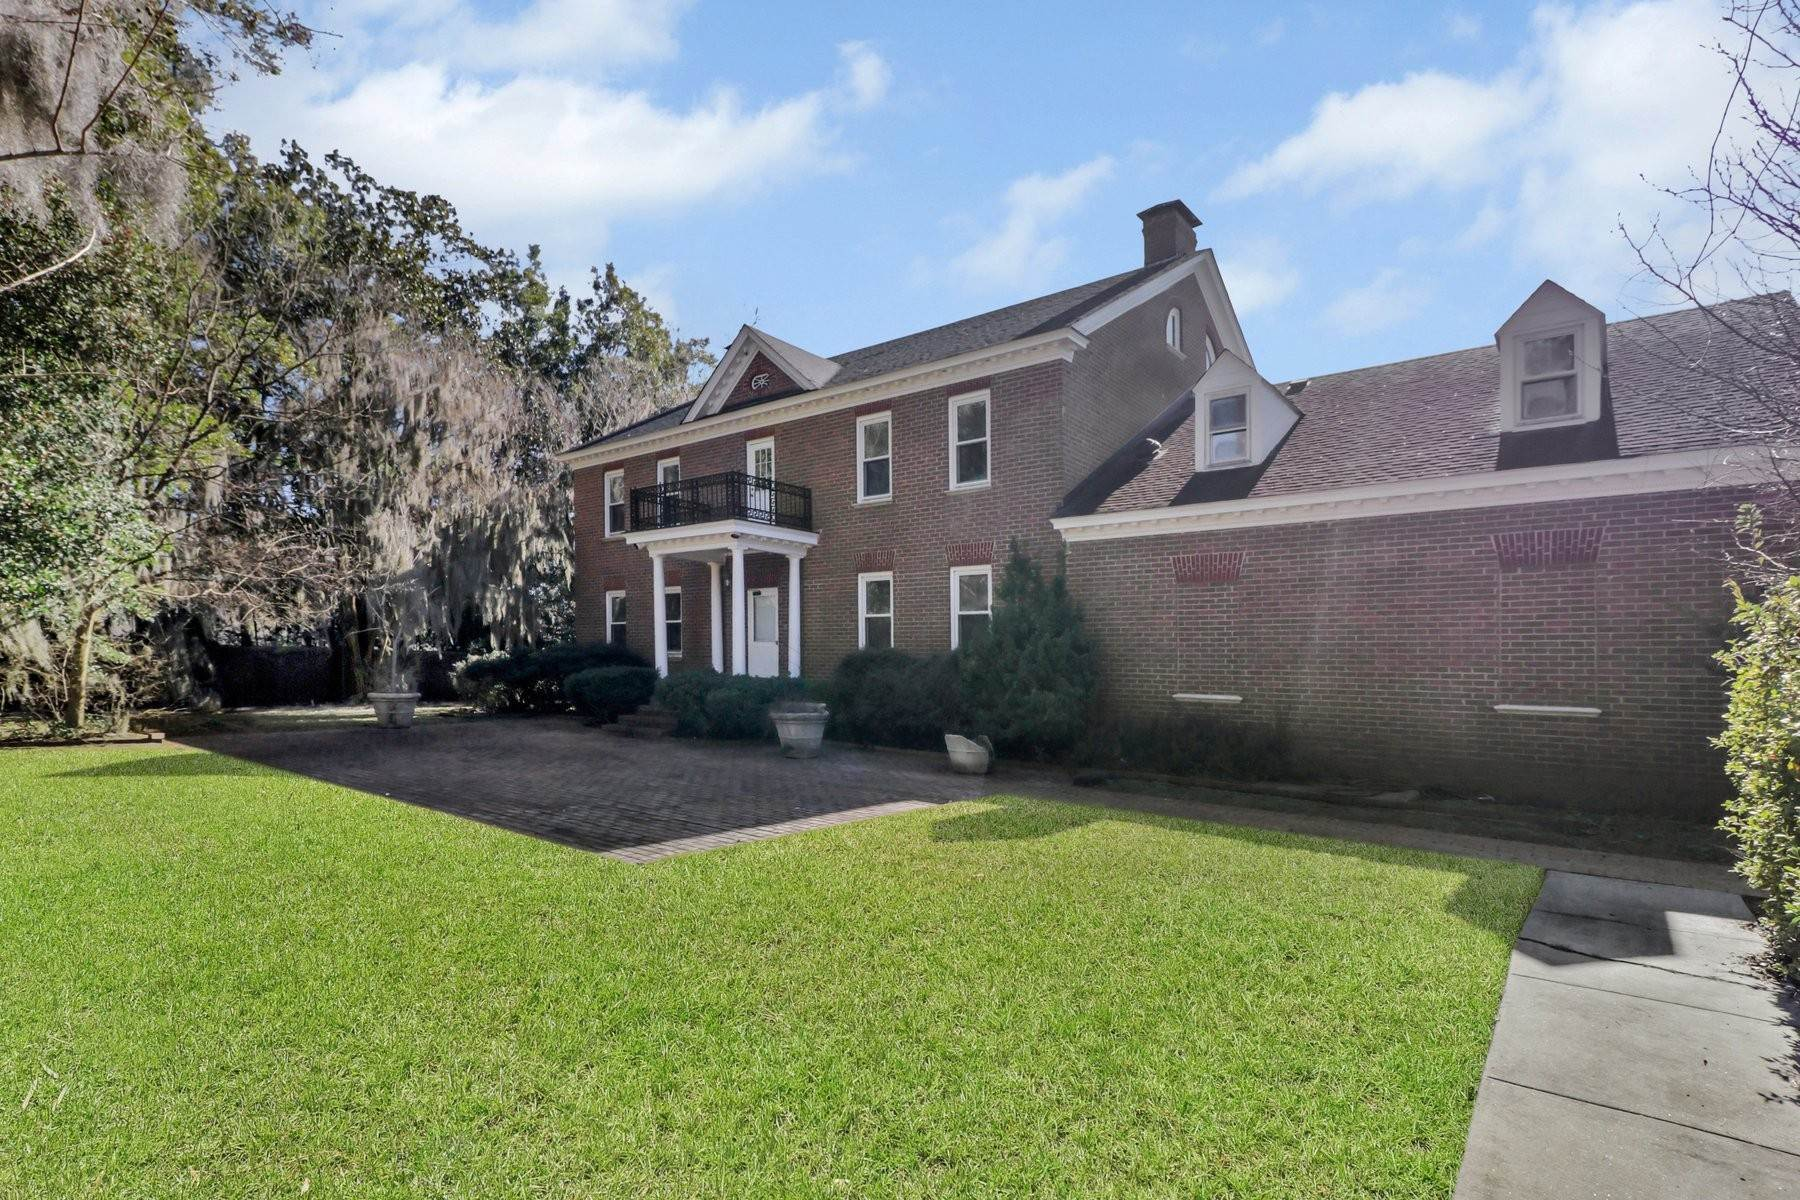 28. Single Family Homes for Sale at Lovely Traditional Brick Home In Habersham Woods 116 McLaws Street Savannah, Georgia 31405 United States